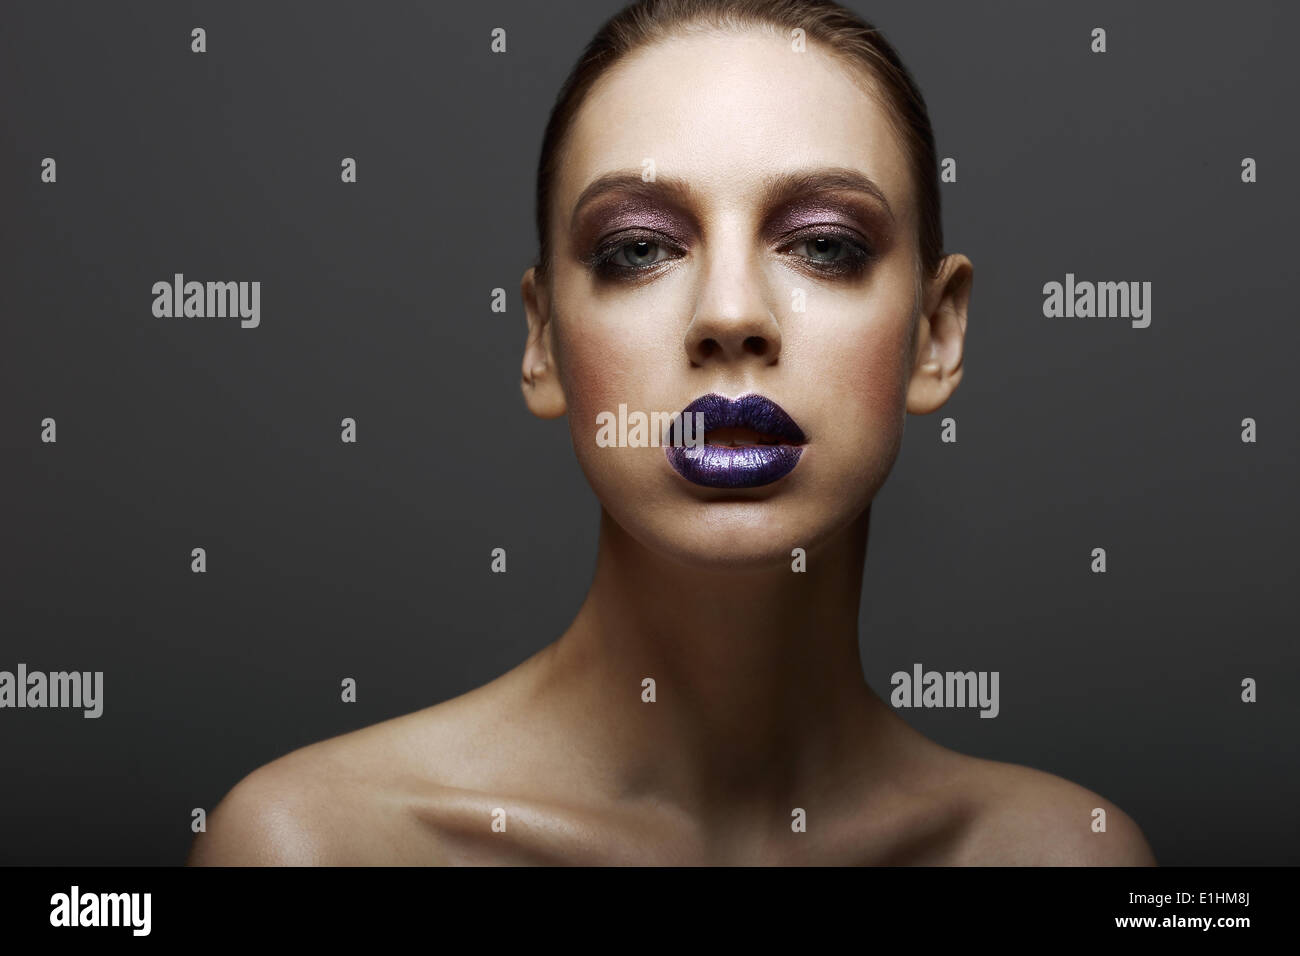 Glam. Classy Ambitious Woman with Glossy Bright Makeup. Elegance - Stock Image